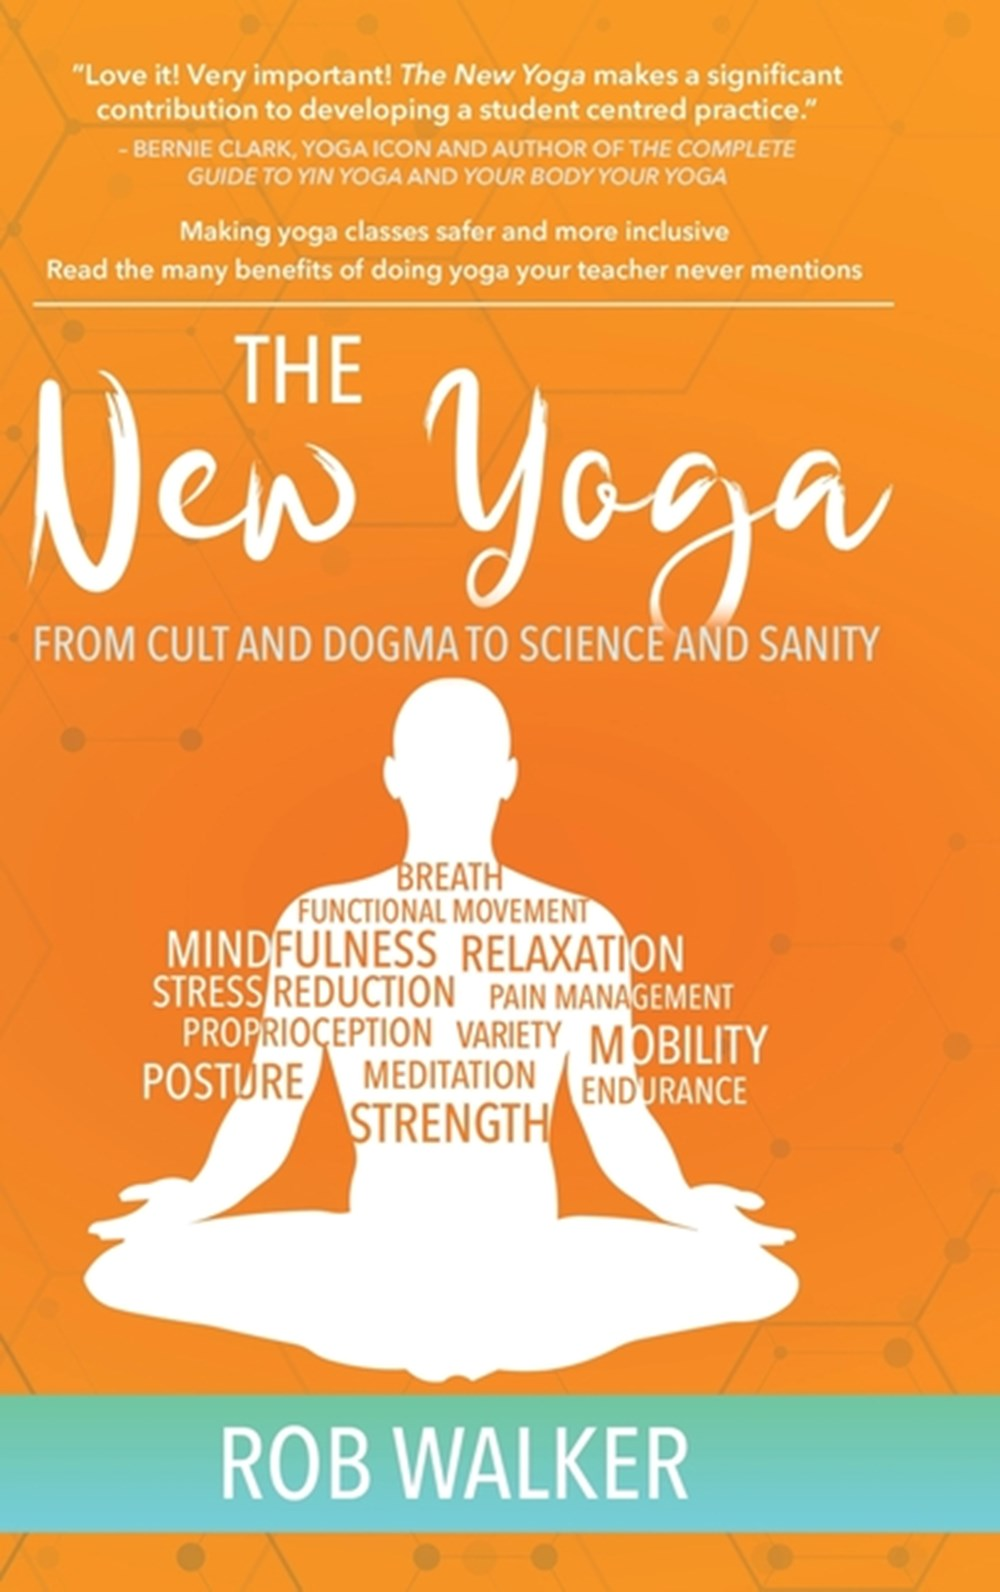 New Yoga From Cults and Dogma to Science and Sanity